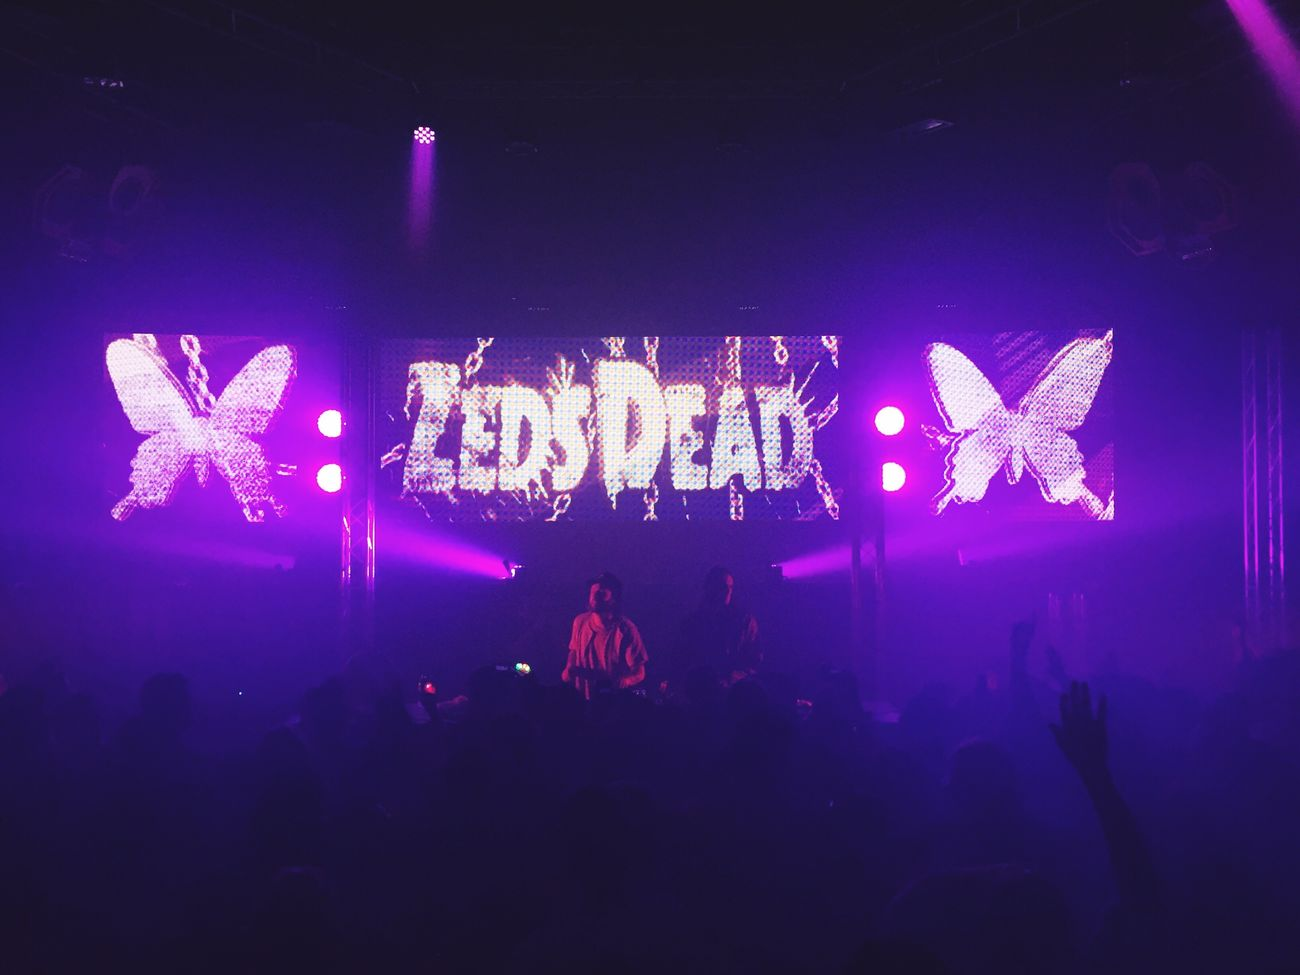 Zeds Dead!!! Zedsdead VJ Ageha Tokyo Japan Photo Nightclub Club Dubstep Edm Edmfamily Ultramusicfestival Dj Lighting